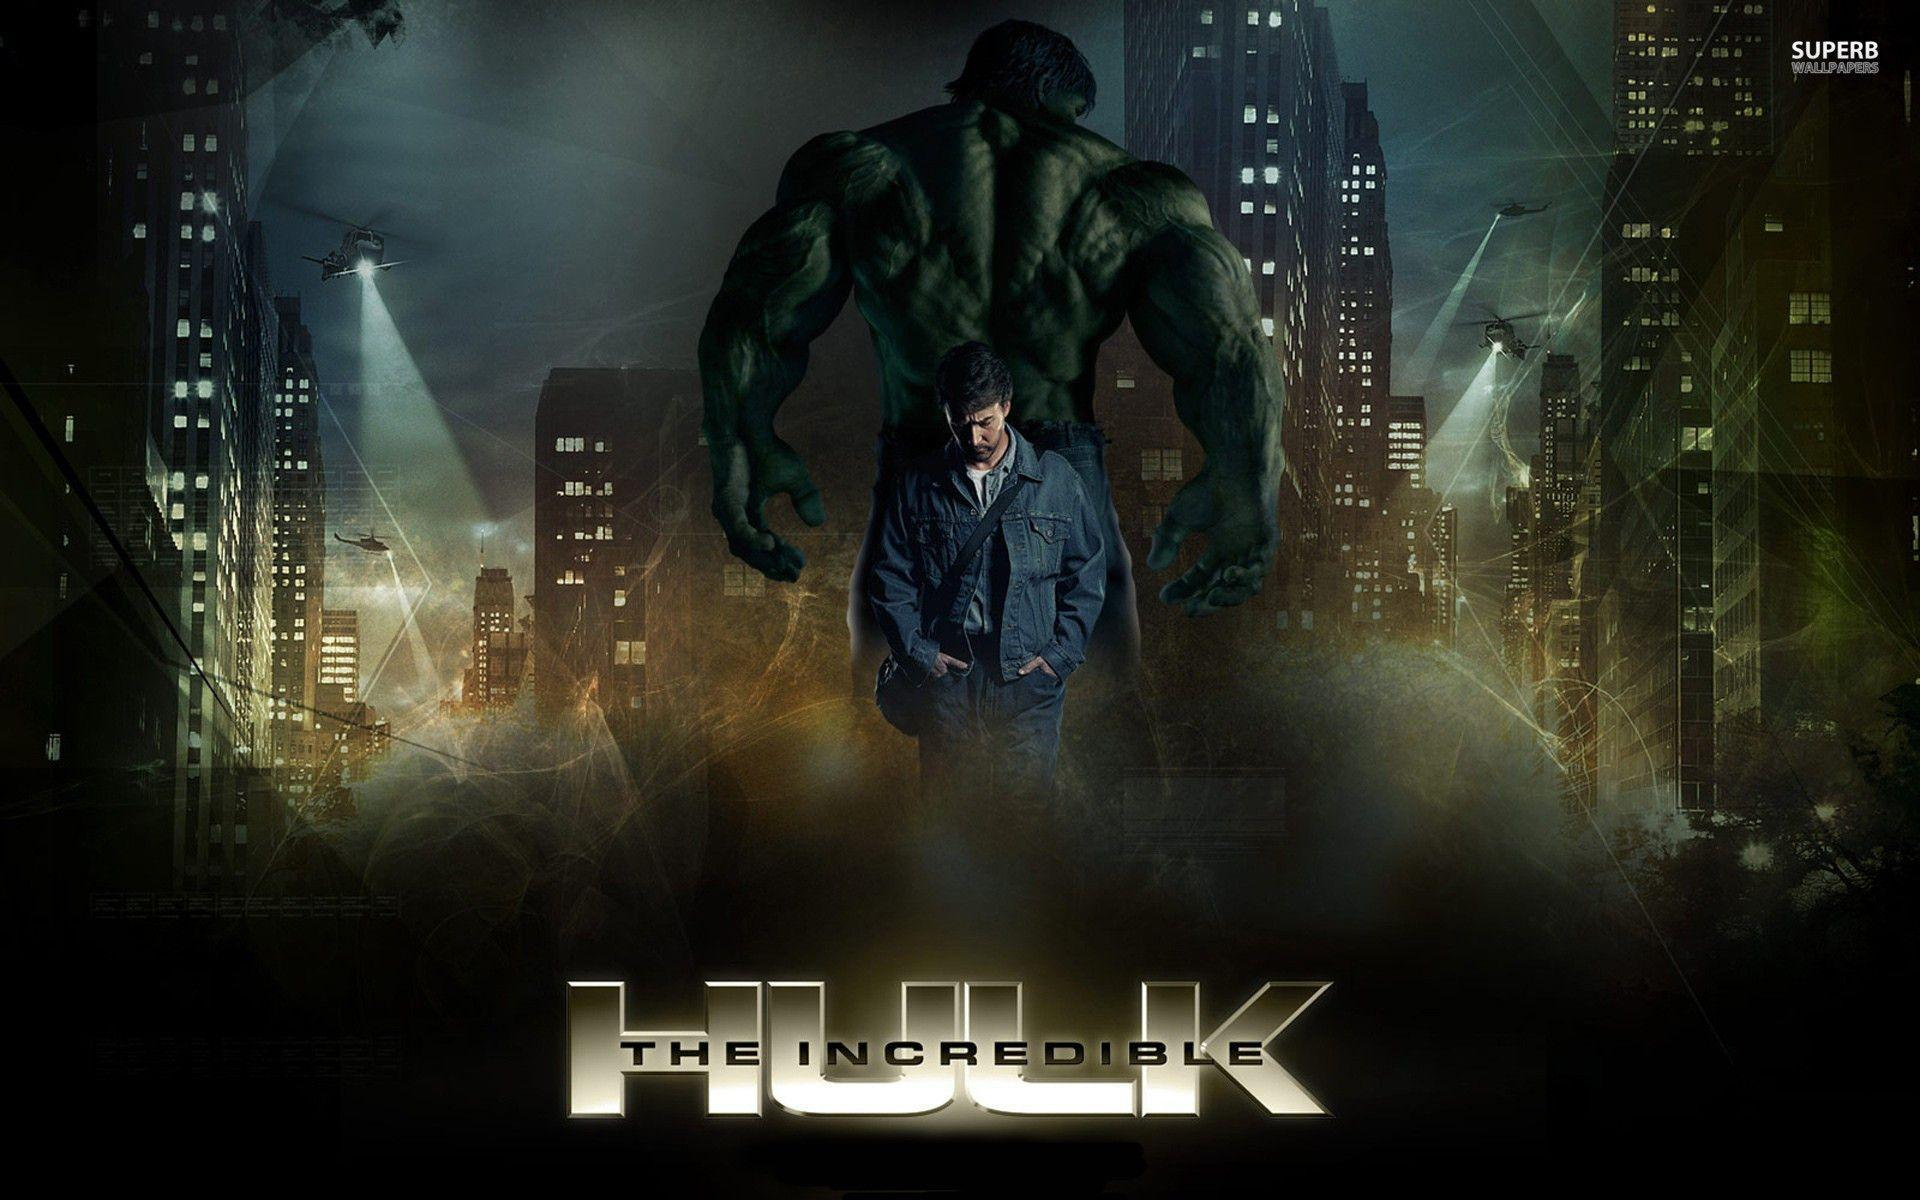 The Incredible Hulk 2014 - Viewing Gallery